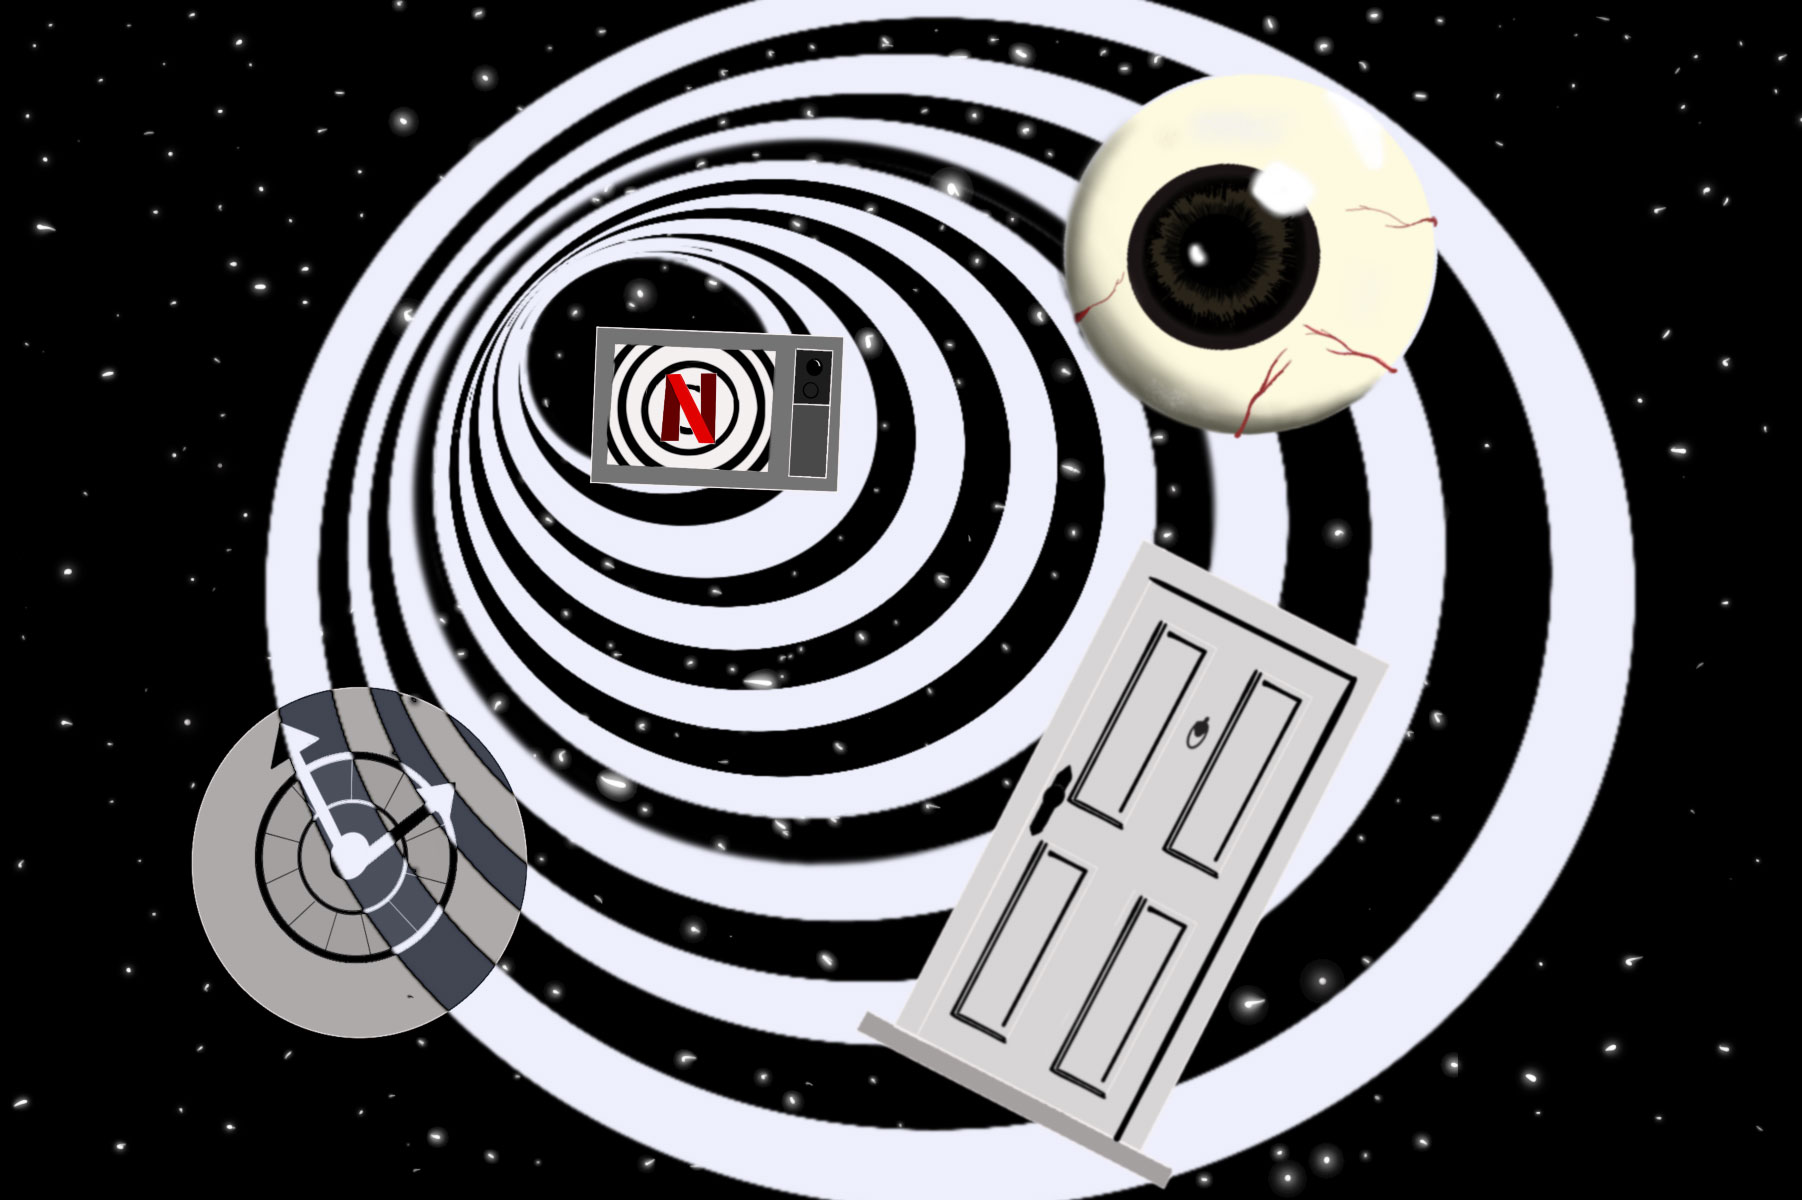 4 Shows on Netflix Inspired by Elements of \'The Twilight Zone\'.